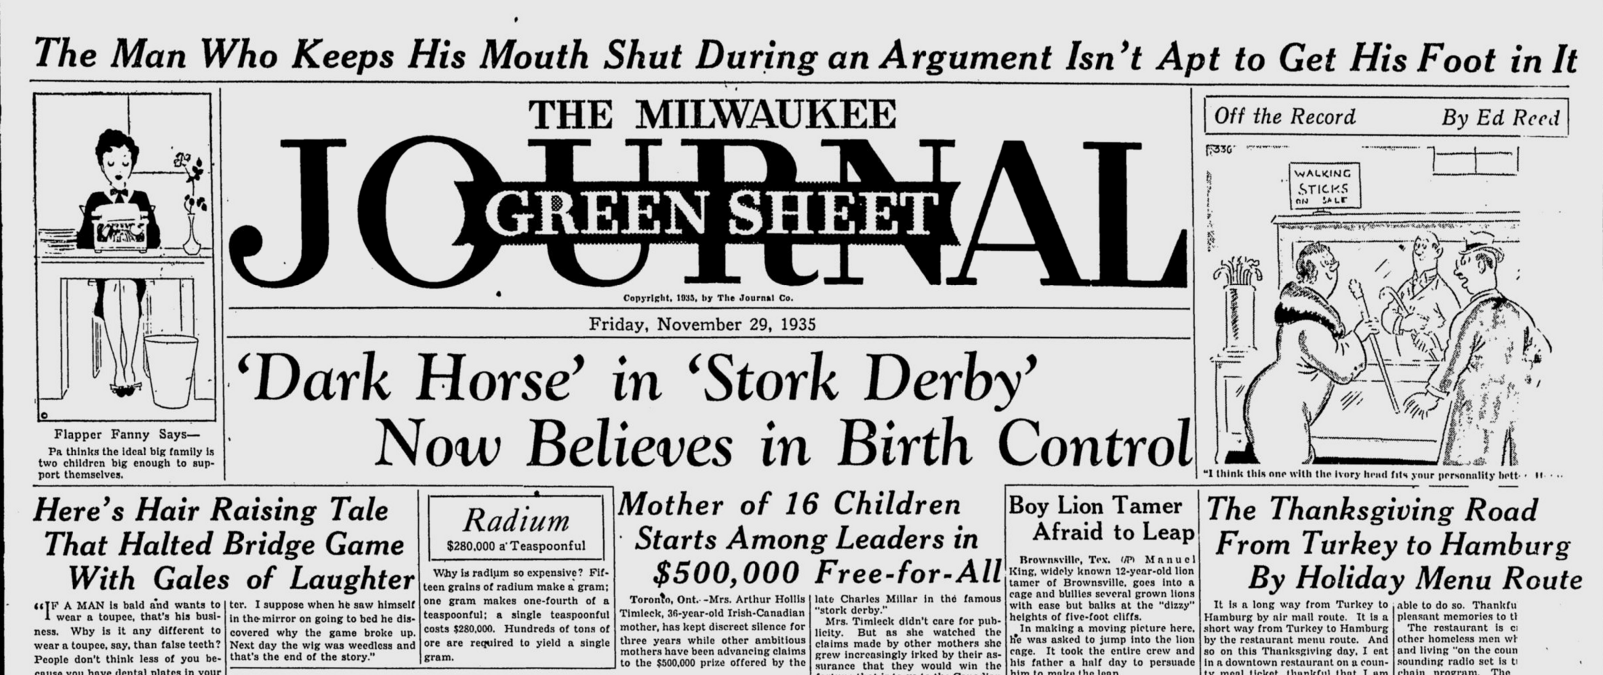 An edition of The Milwaukee Journal from November 29, 1935.